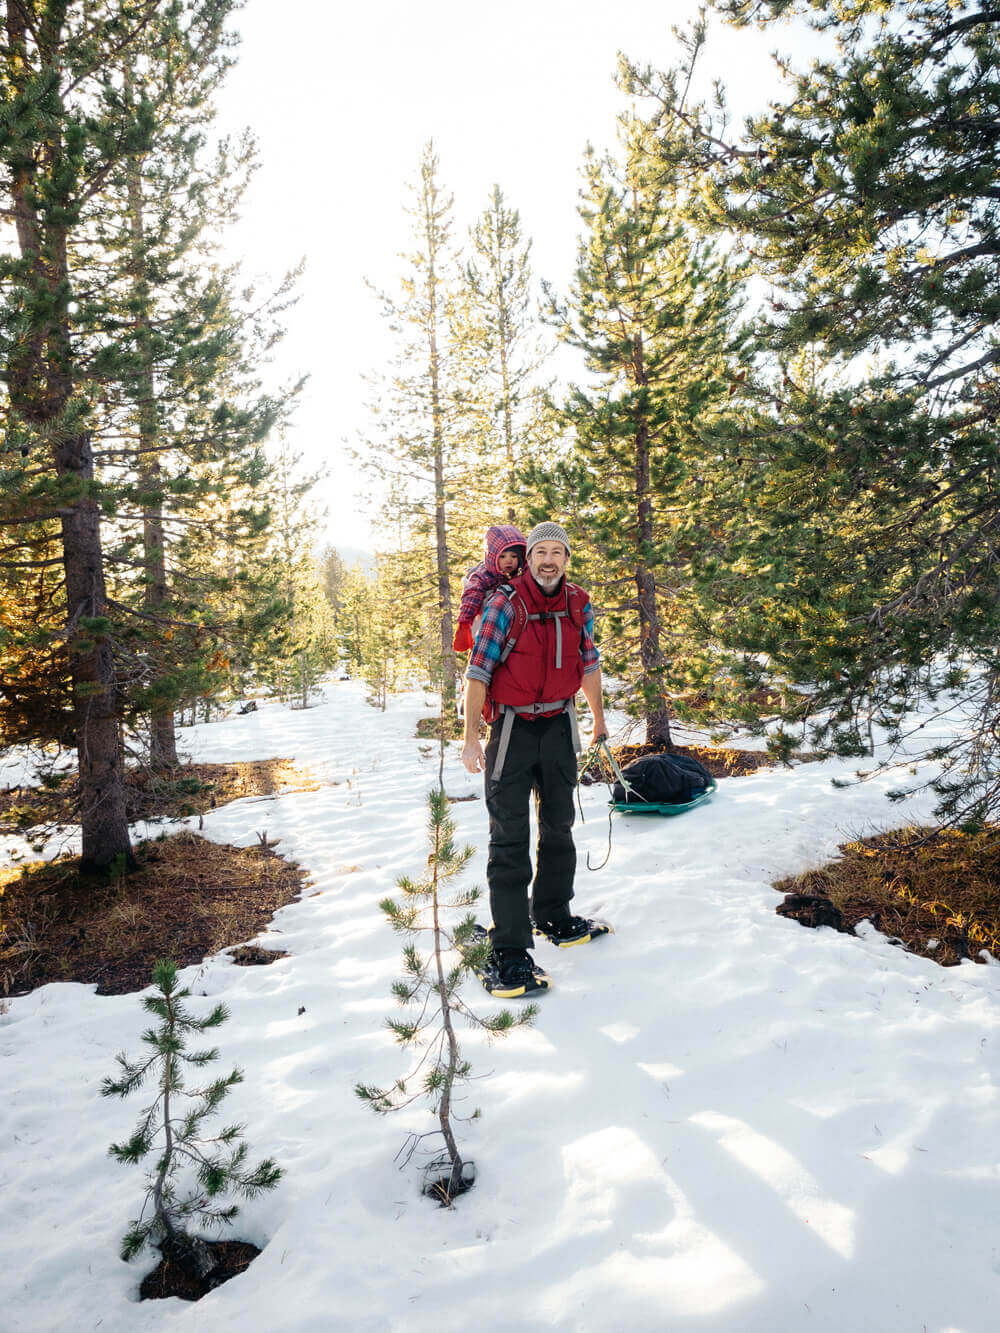 Snowshoeing in the national forest